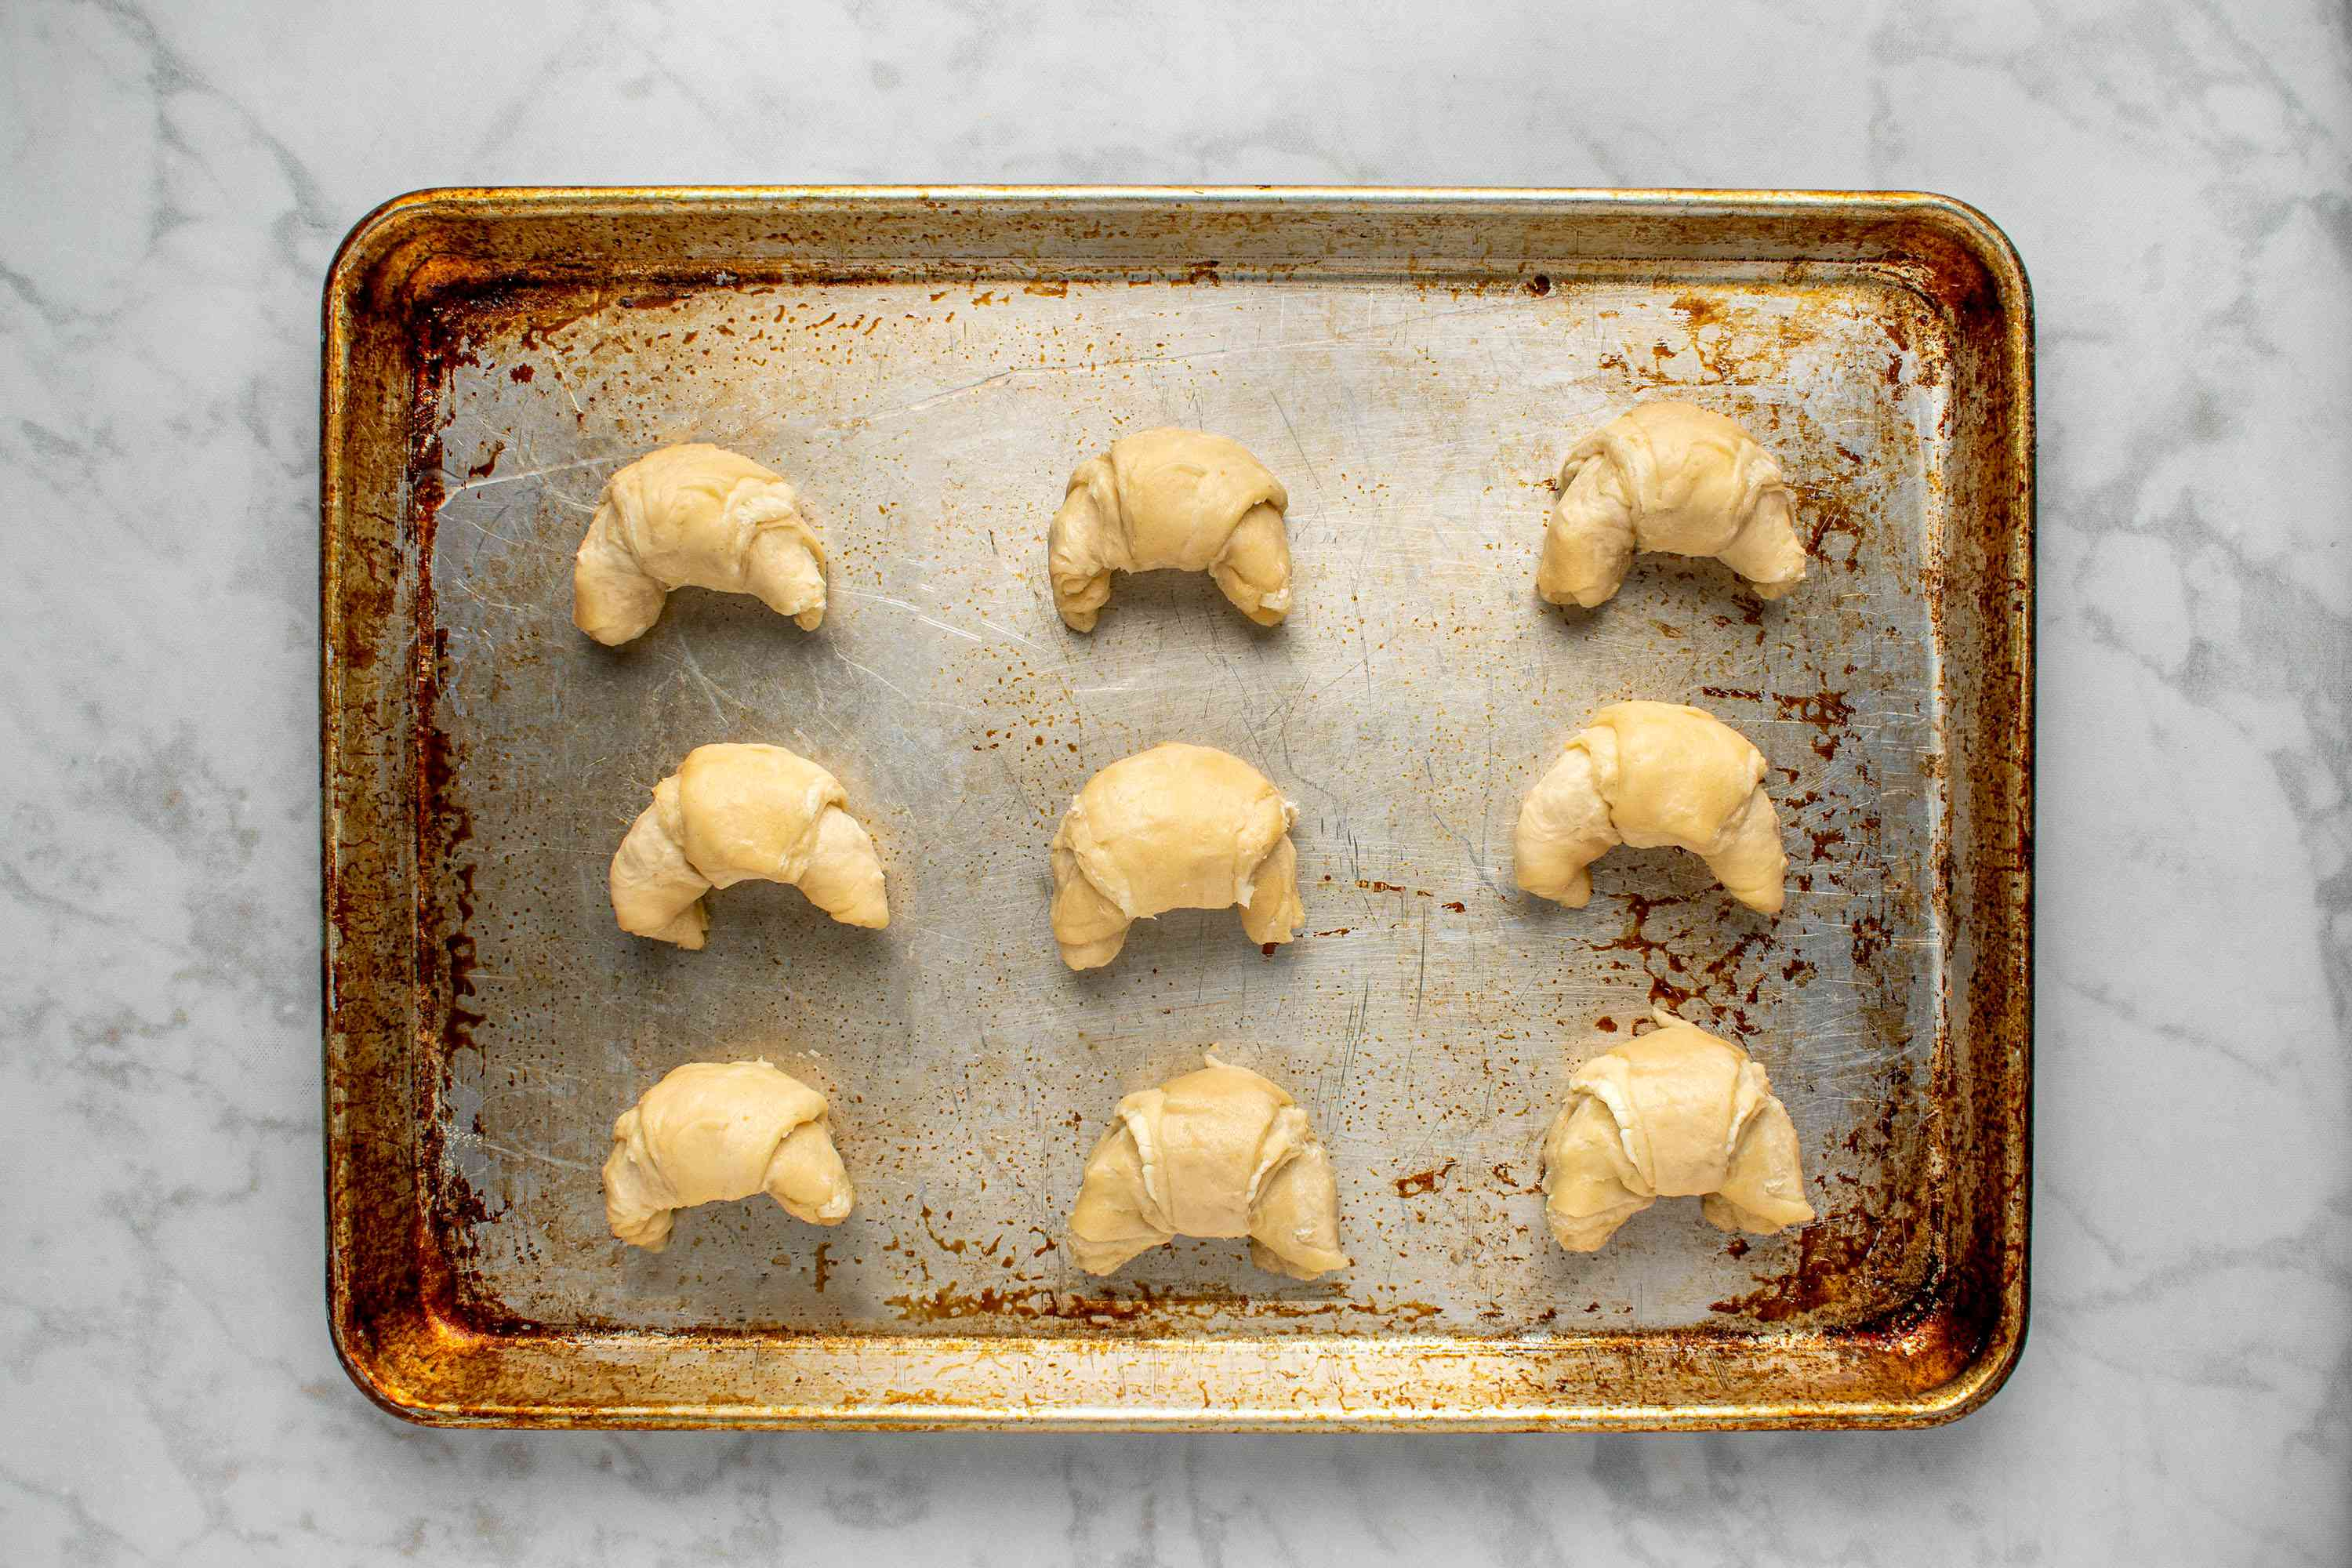 unbaked croissants on a baking sheet